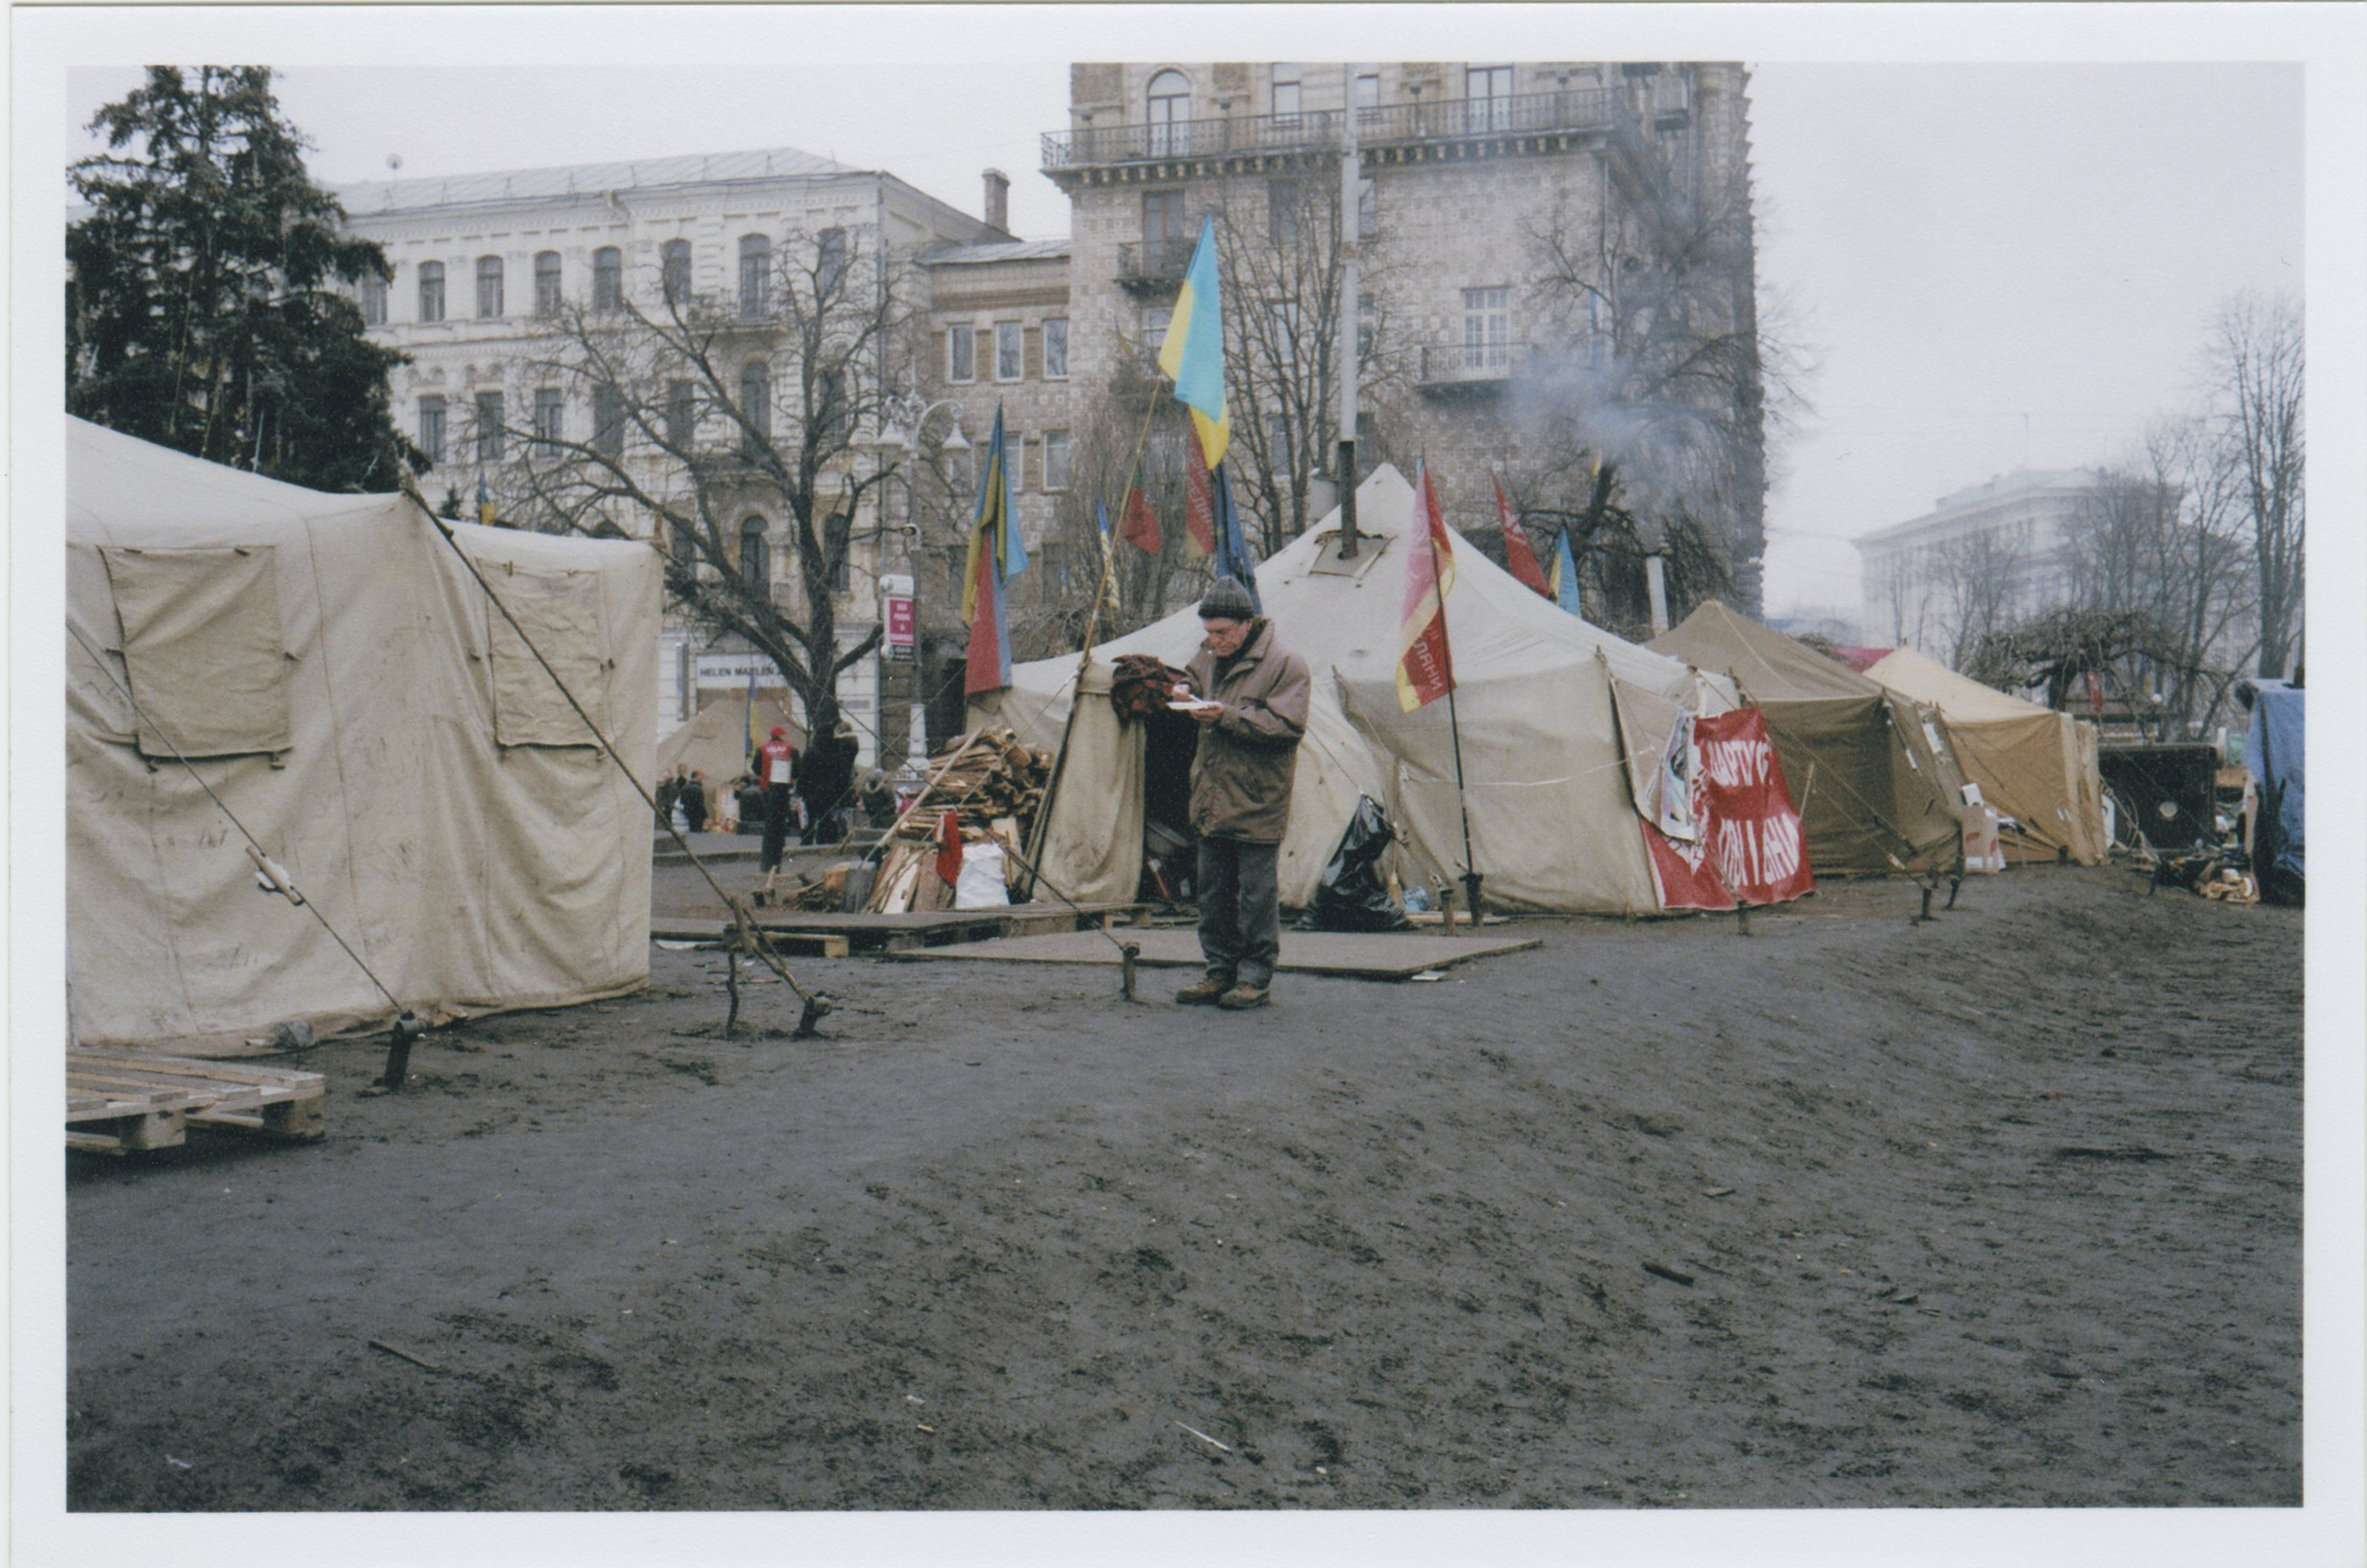 Canvas tents in Maidan. There were about 200 large tents like this set up in the square.    Photo: Michael Berlucchi